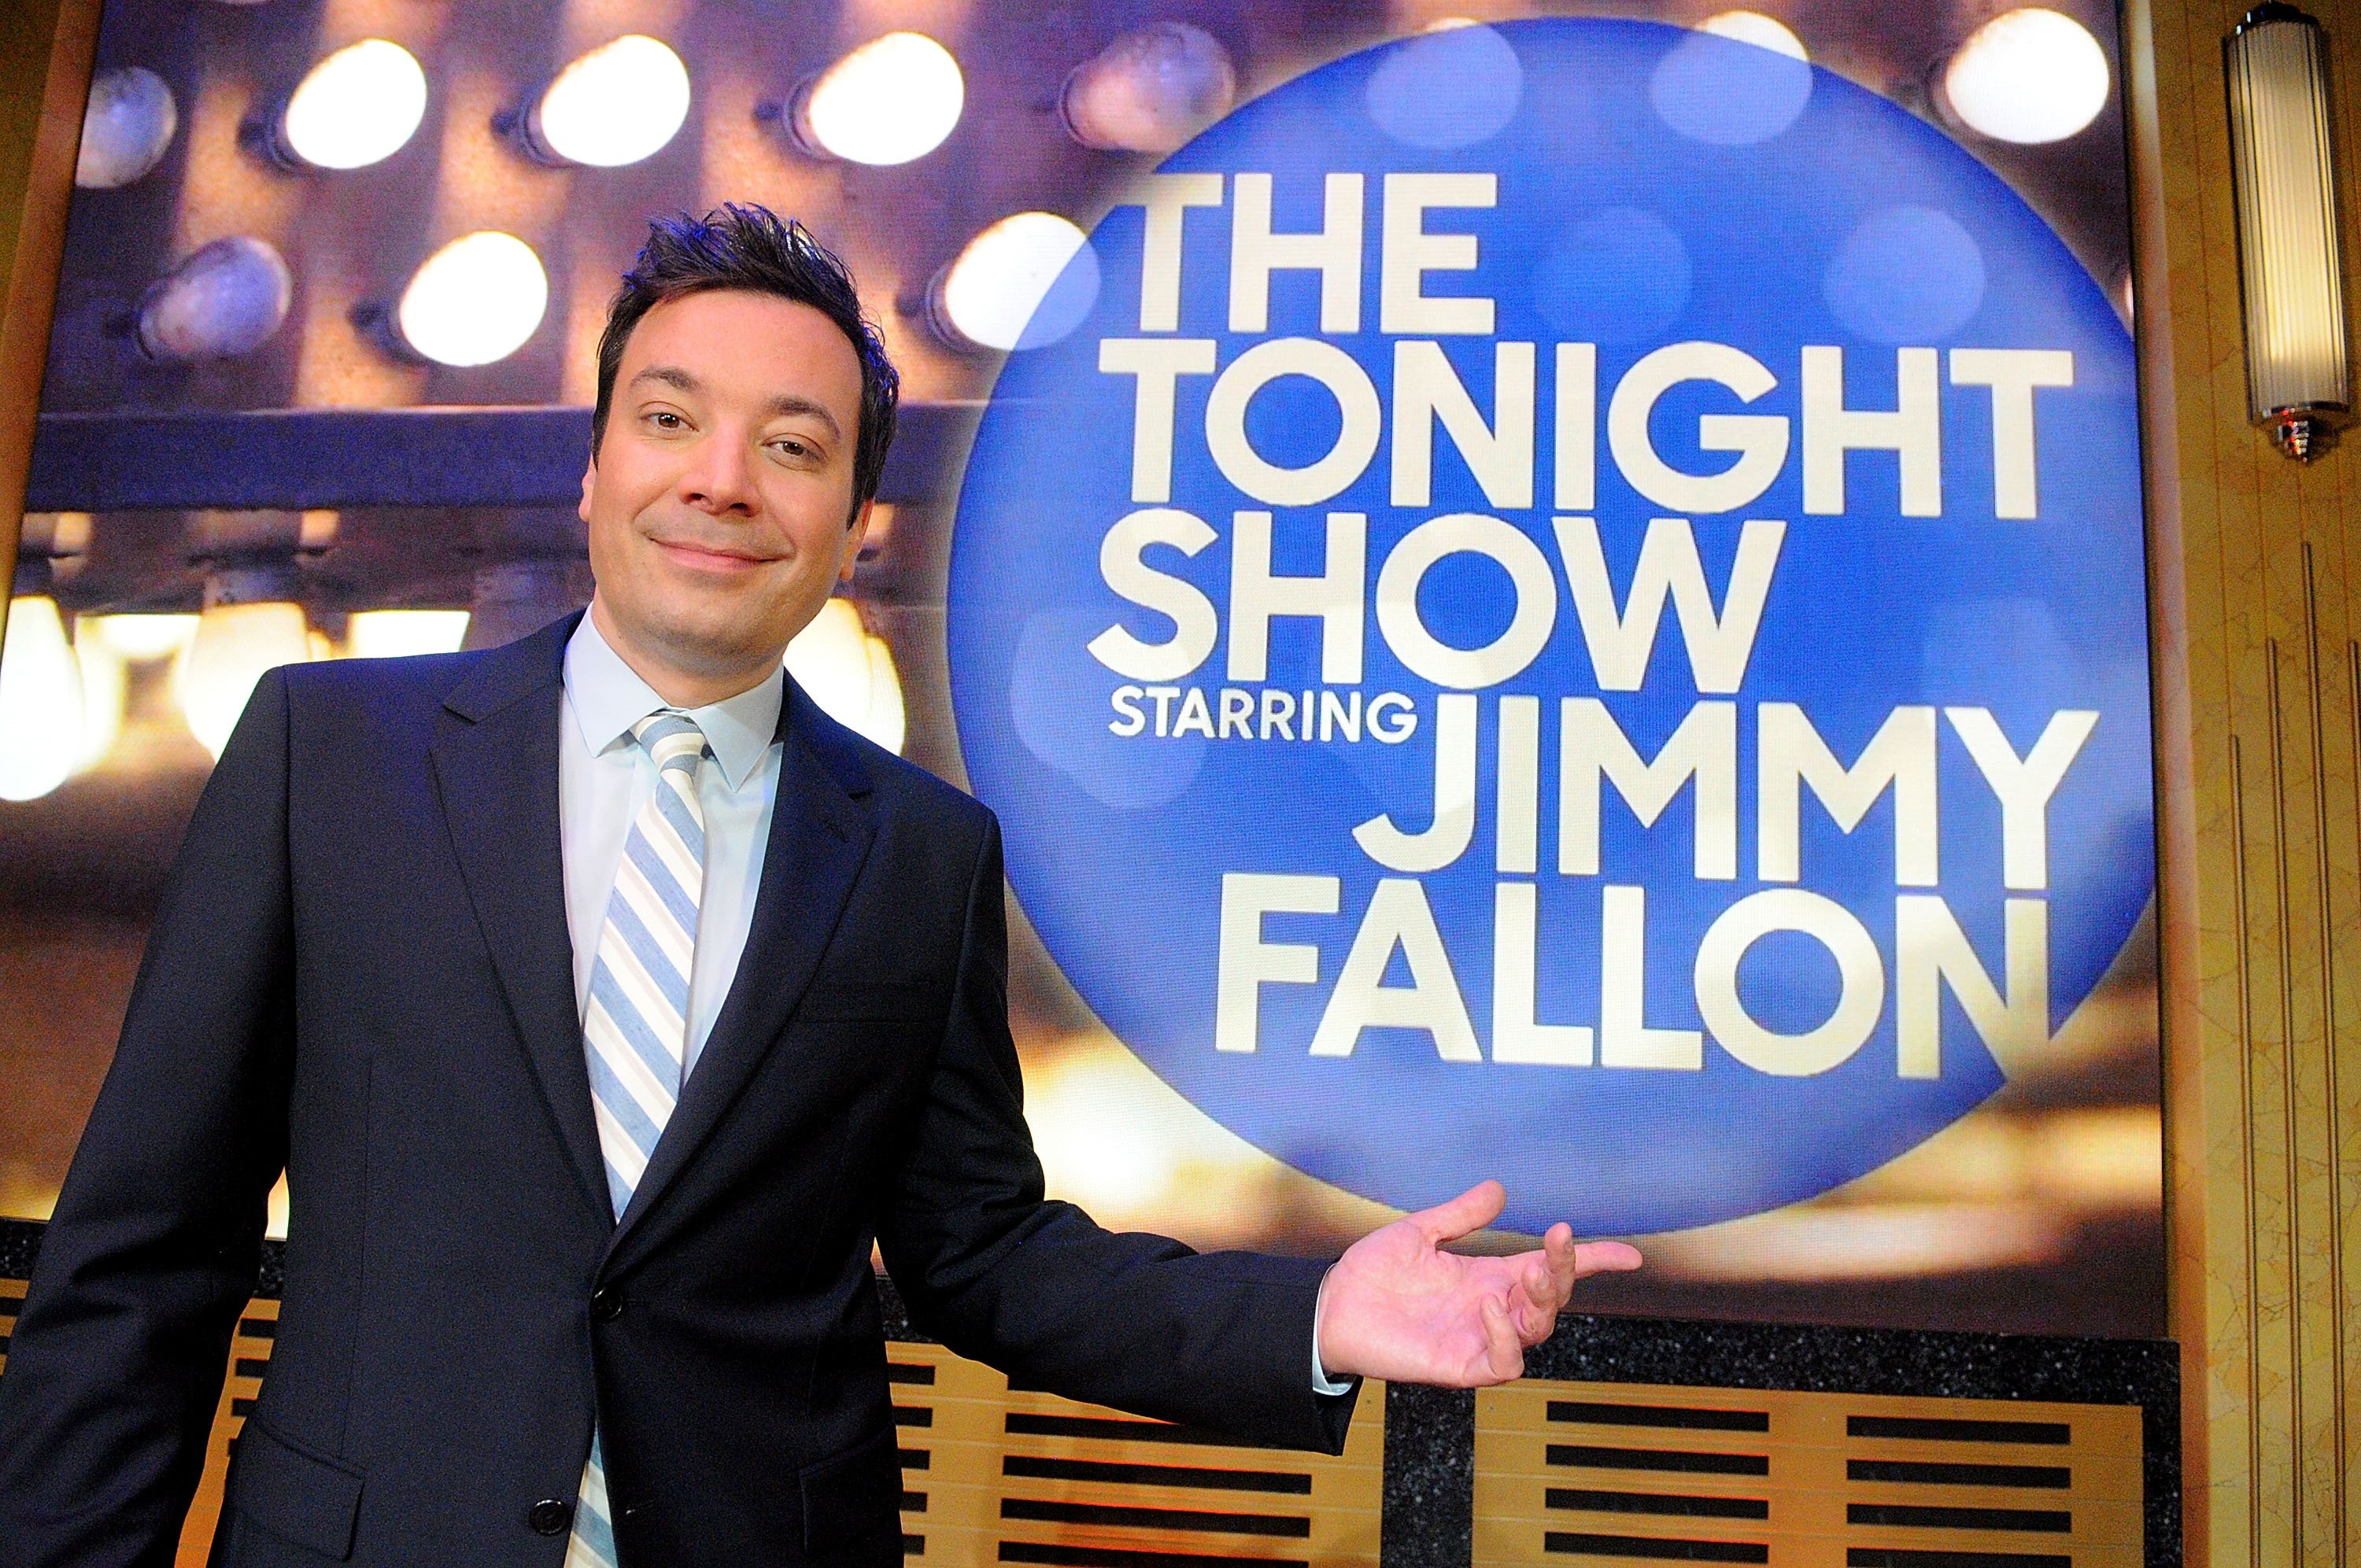 Jimmy Fallon poses during a presentation for the media on April 3, 2017, in Orlando, Florida. | Source: Getty Images.